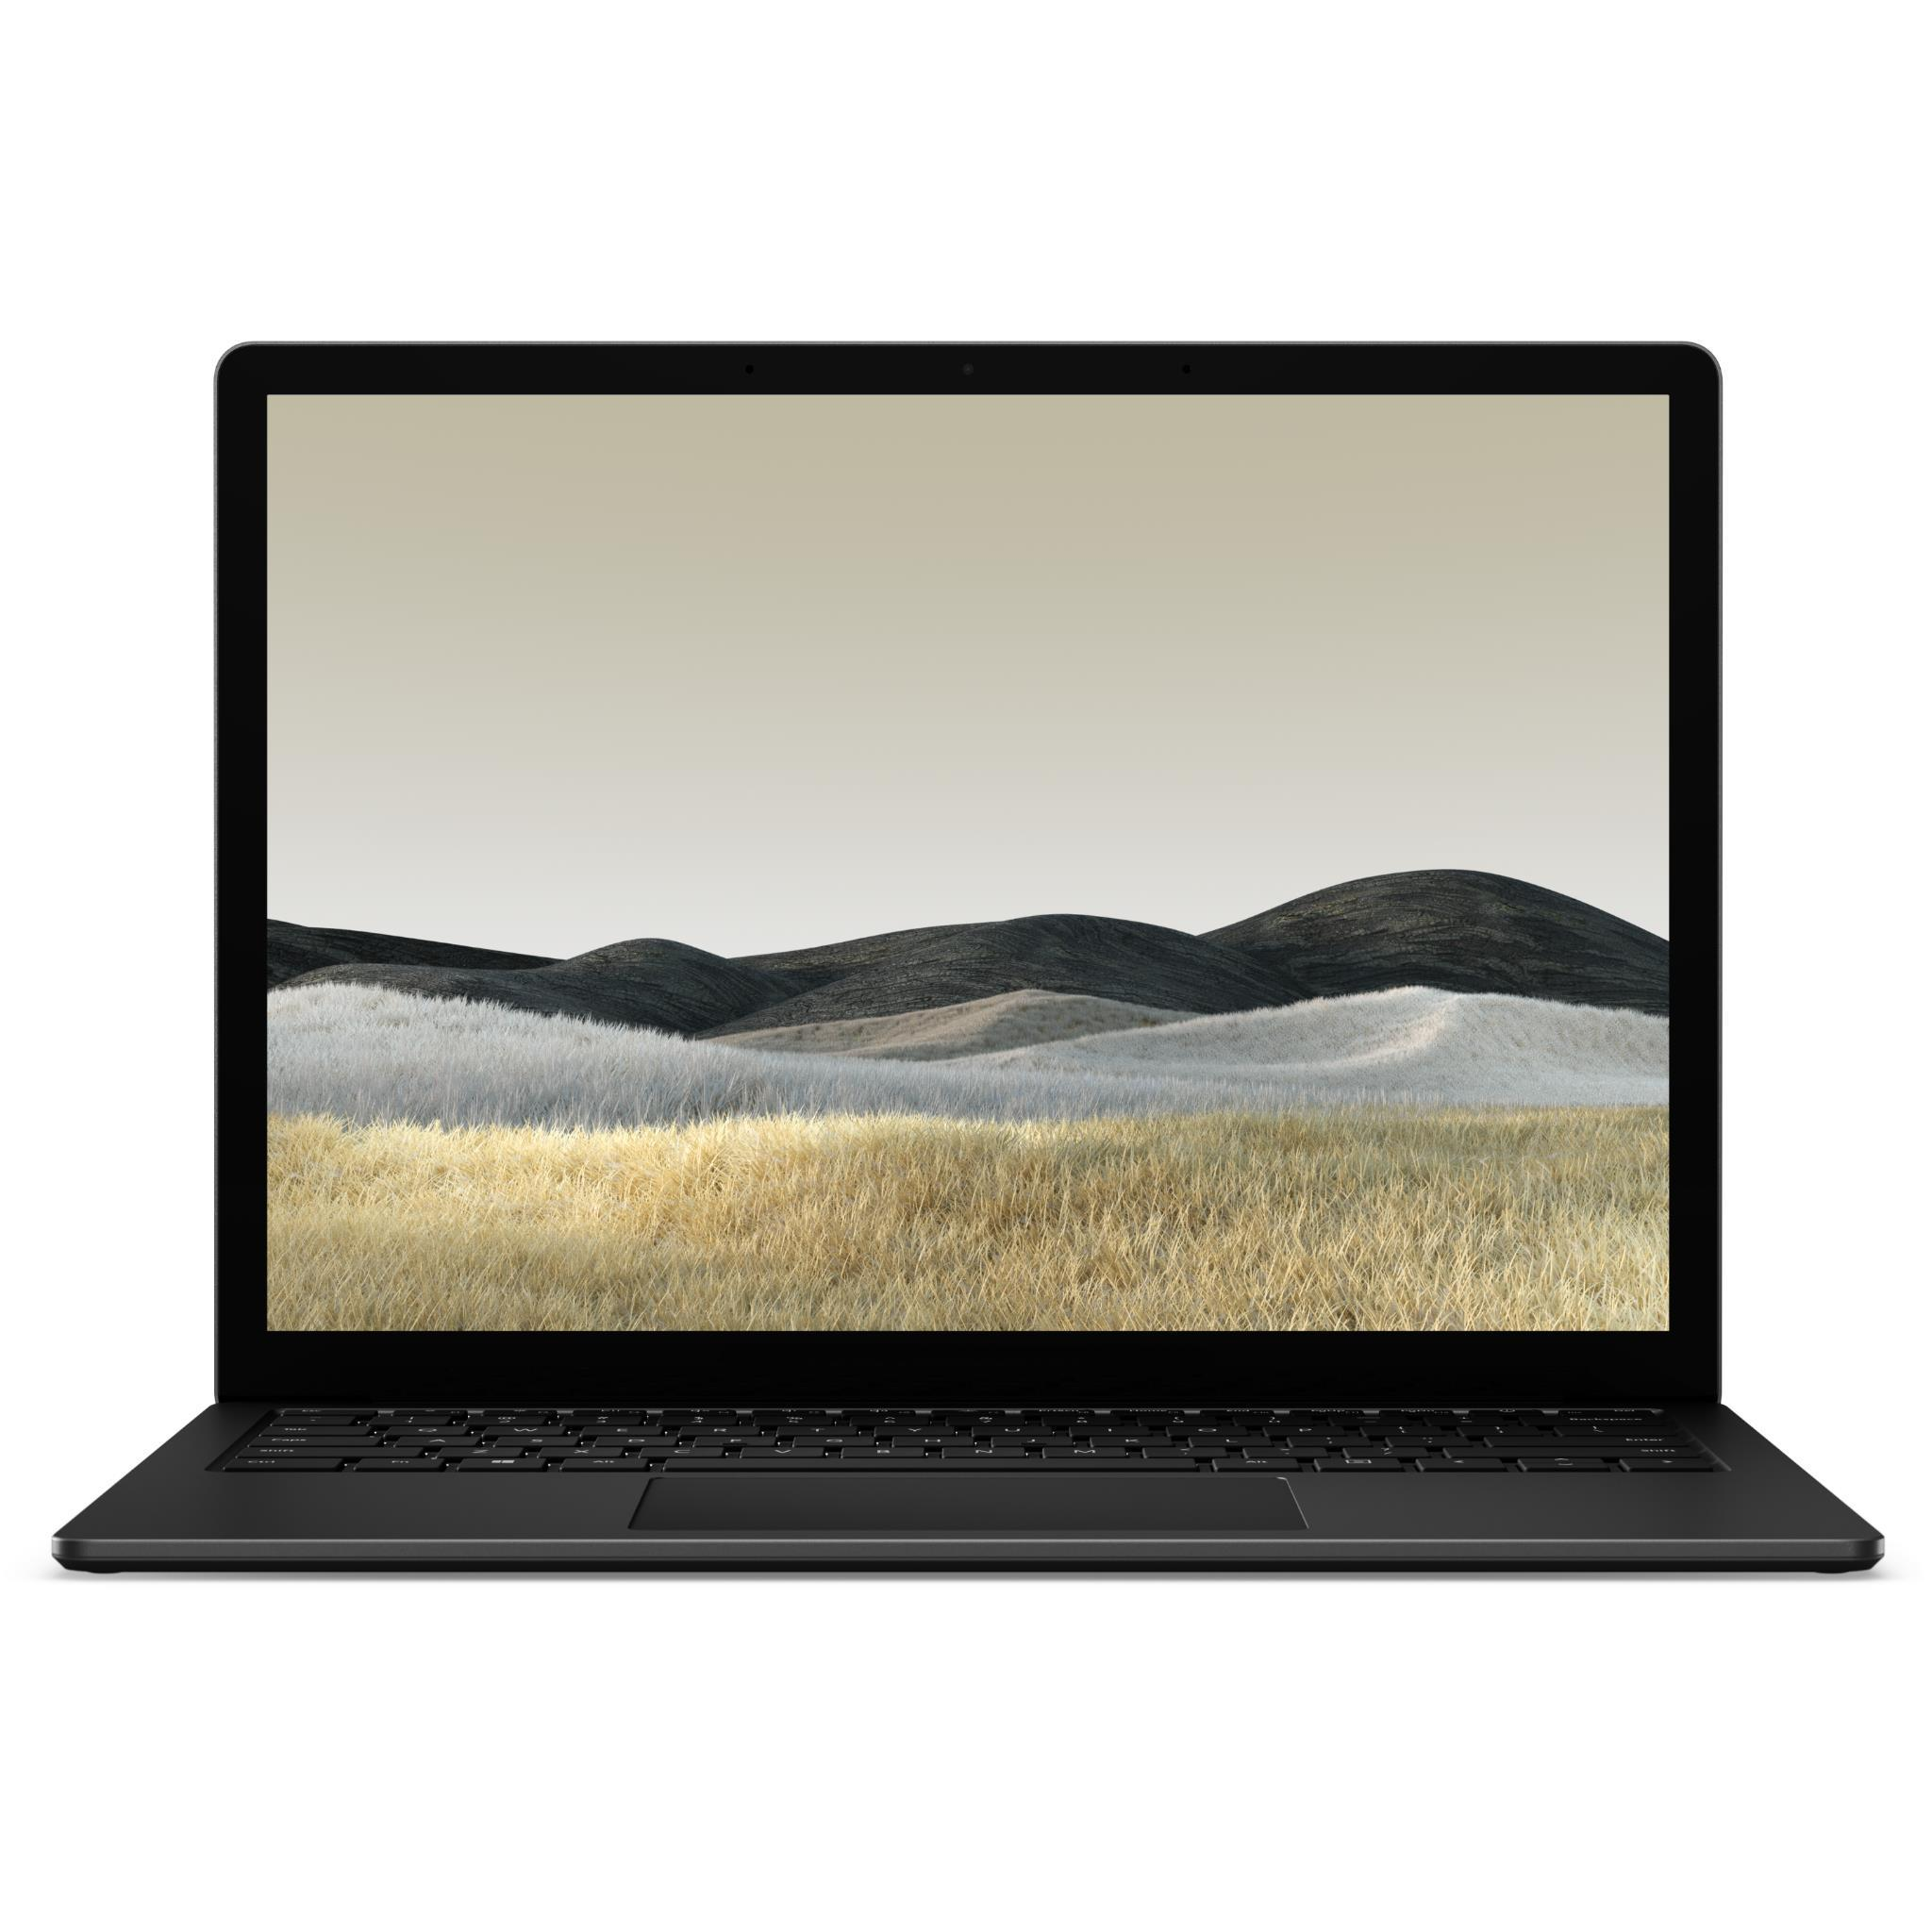 Microsoft Surface Laptop 3 13.5″ i7 512GB (Black)